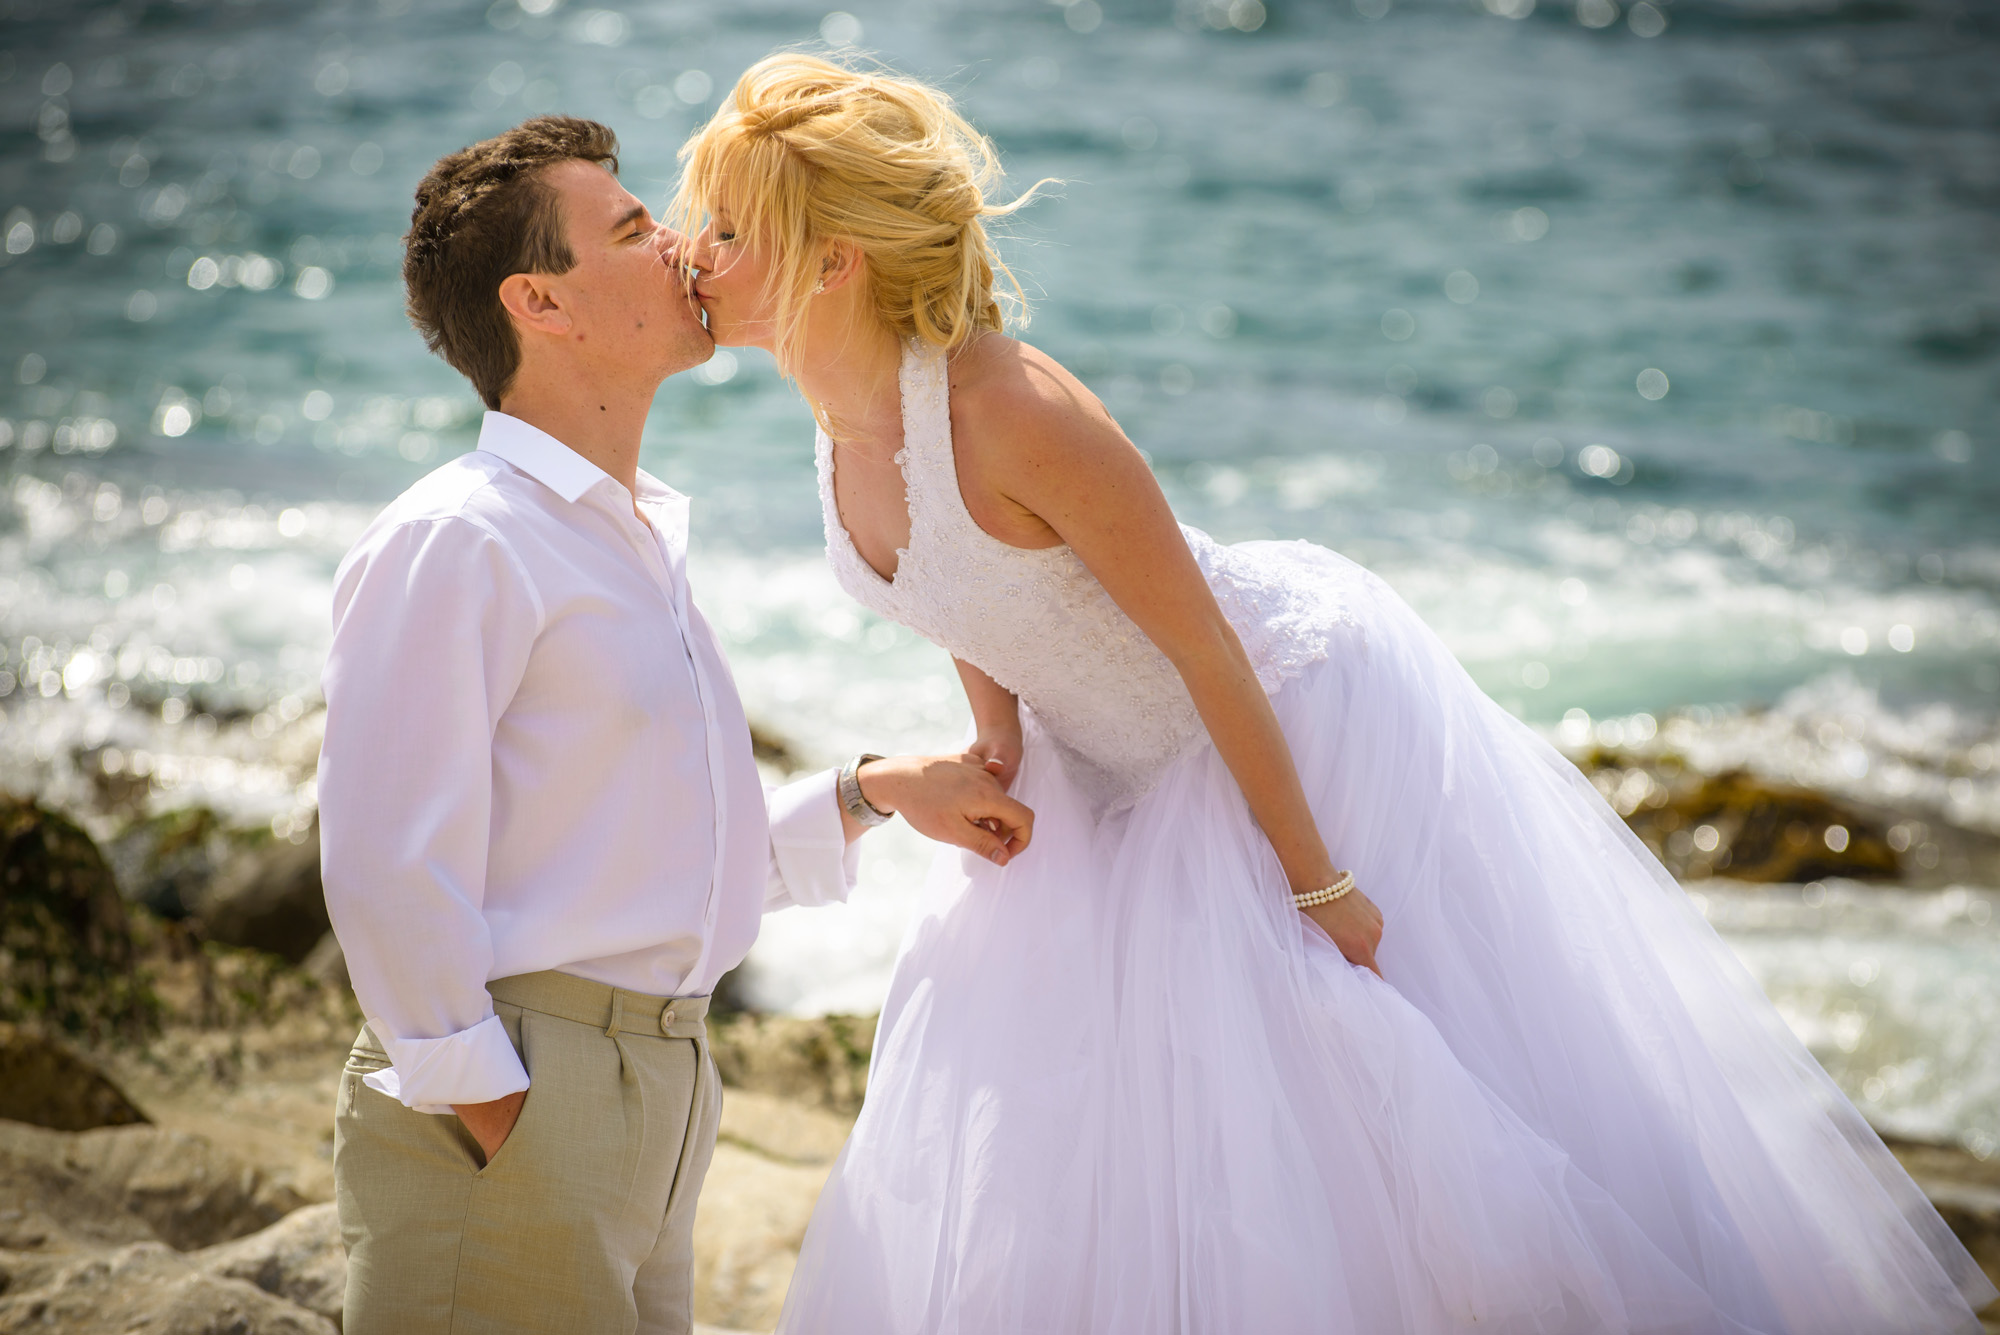 0010_d800_Konstantin_and_Yevgeniya_Wedding_Rock_Carmel_Elopement_Photography.jpg